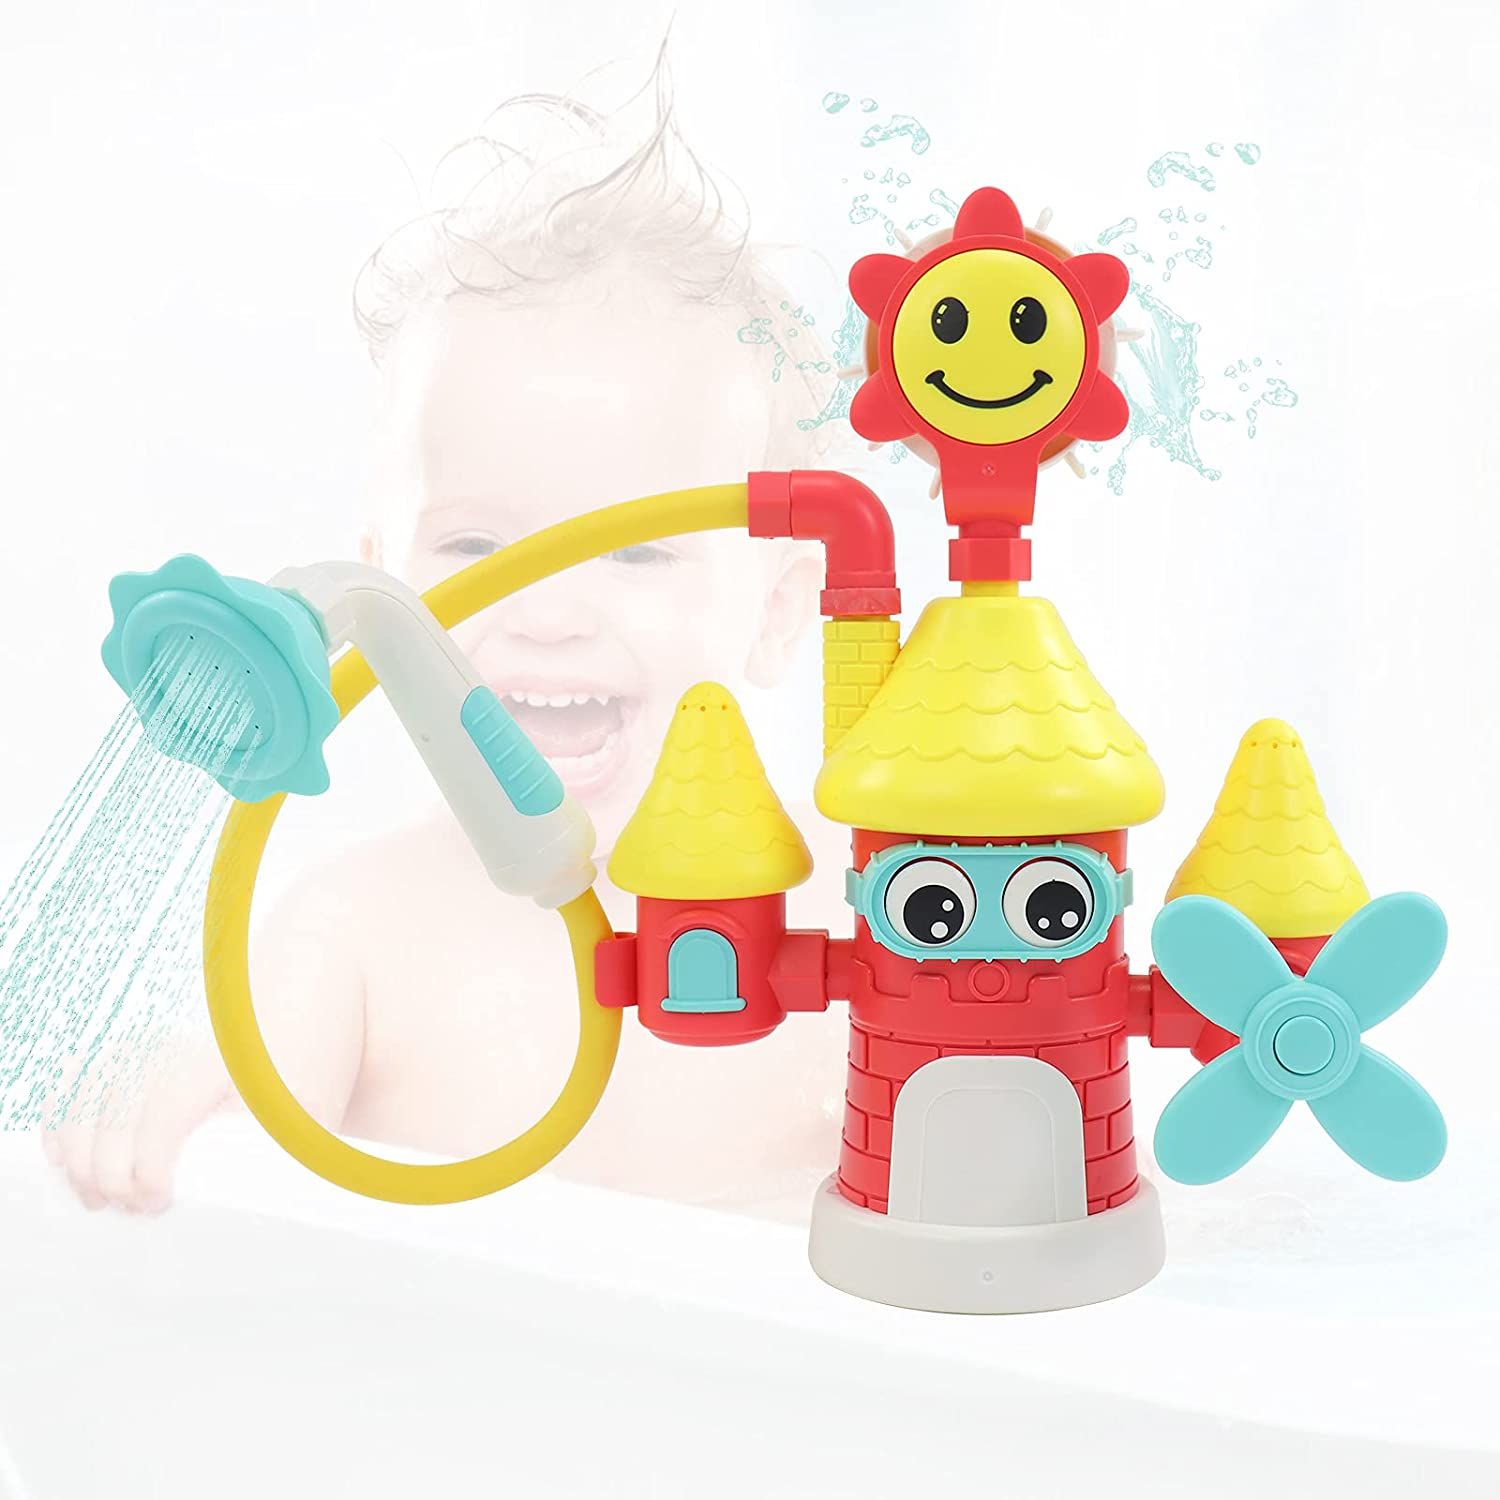 Bathtub Toys Baby Bath for 3-4 Toddlers Years Max 64% OFF Electric Kids Fashion